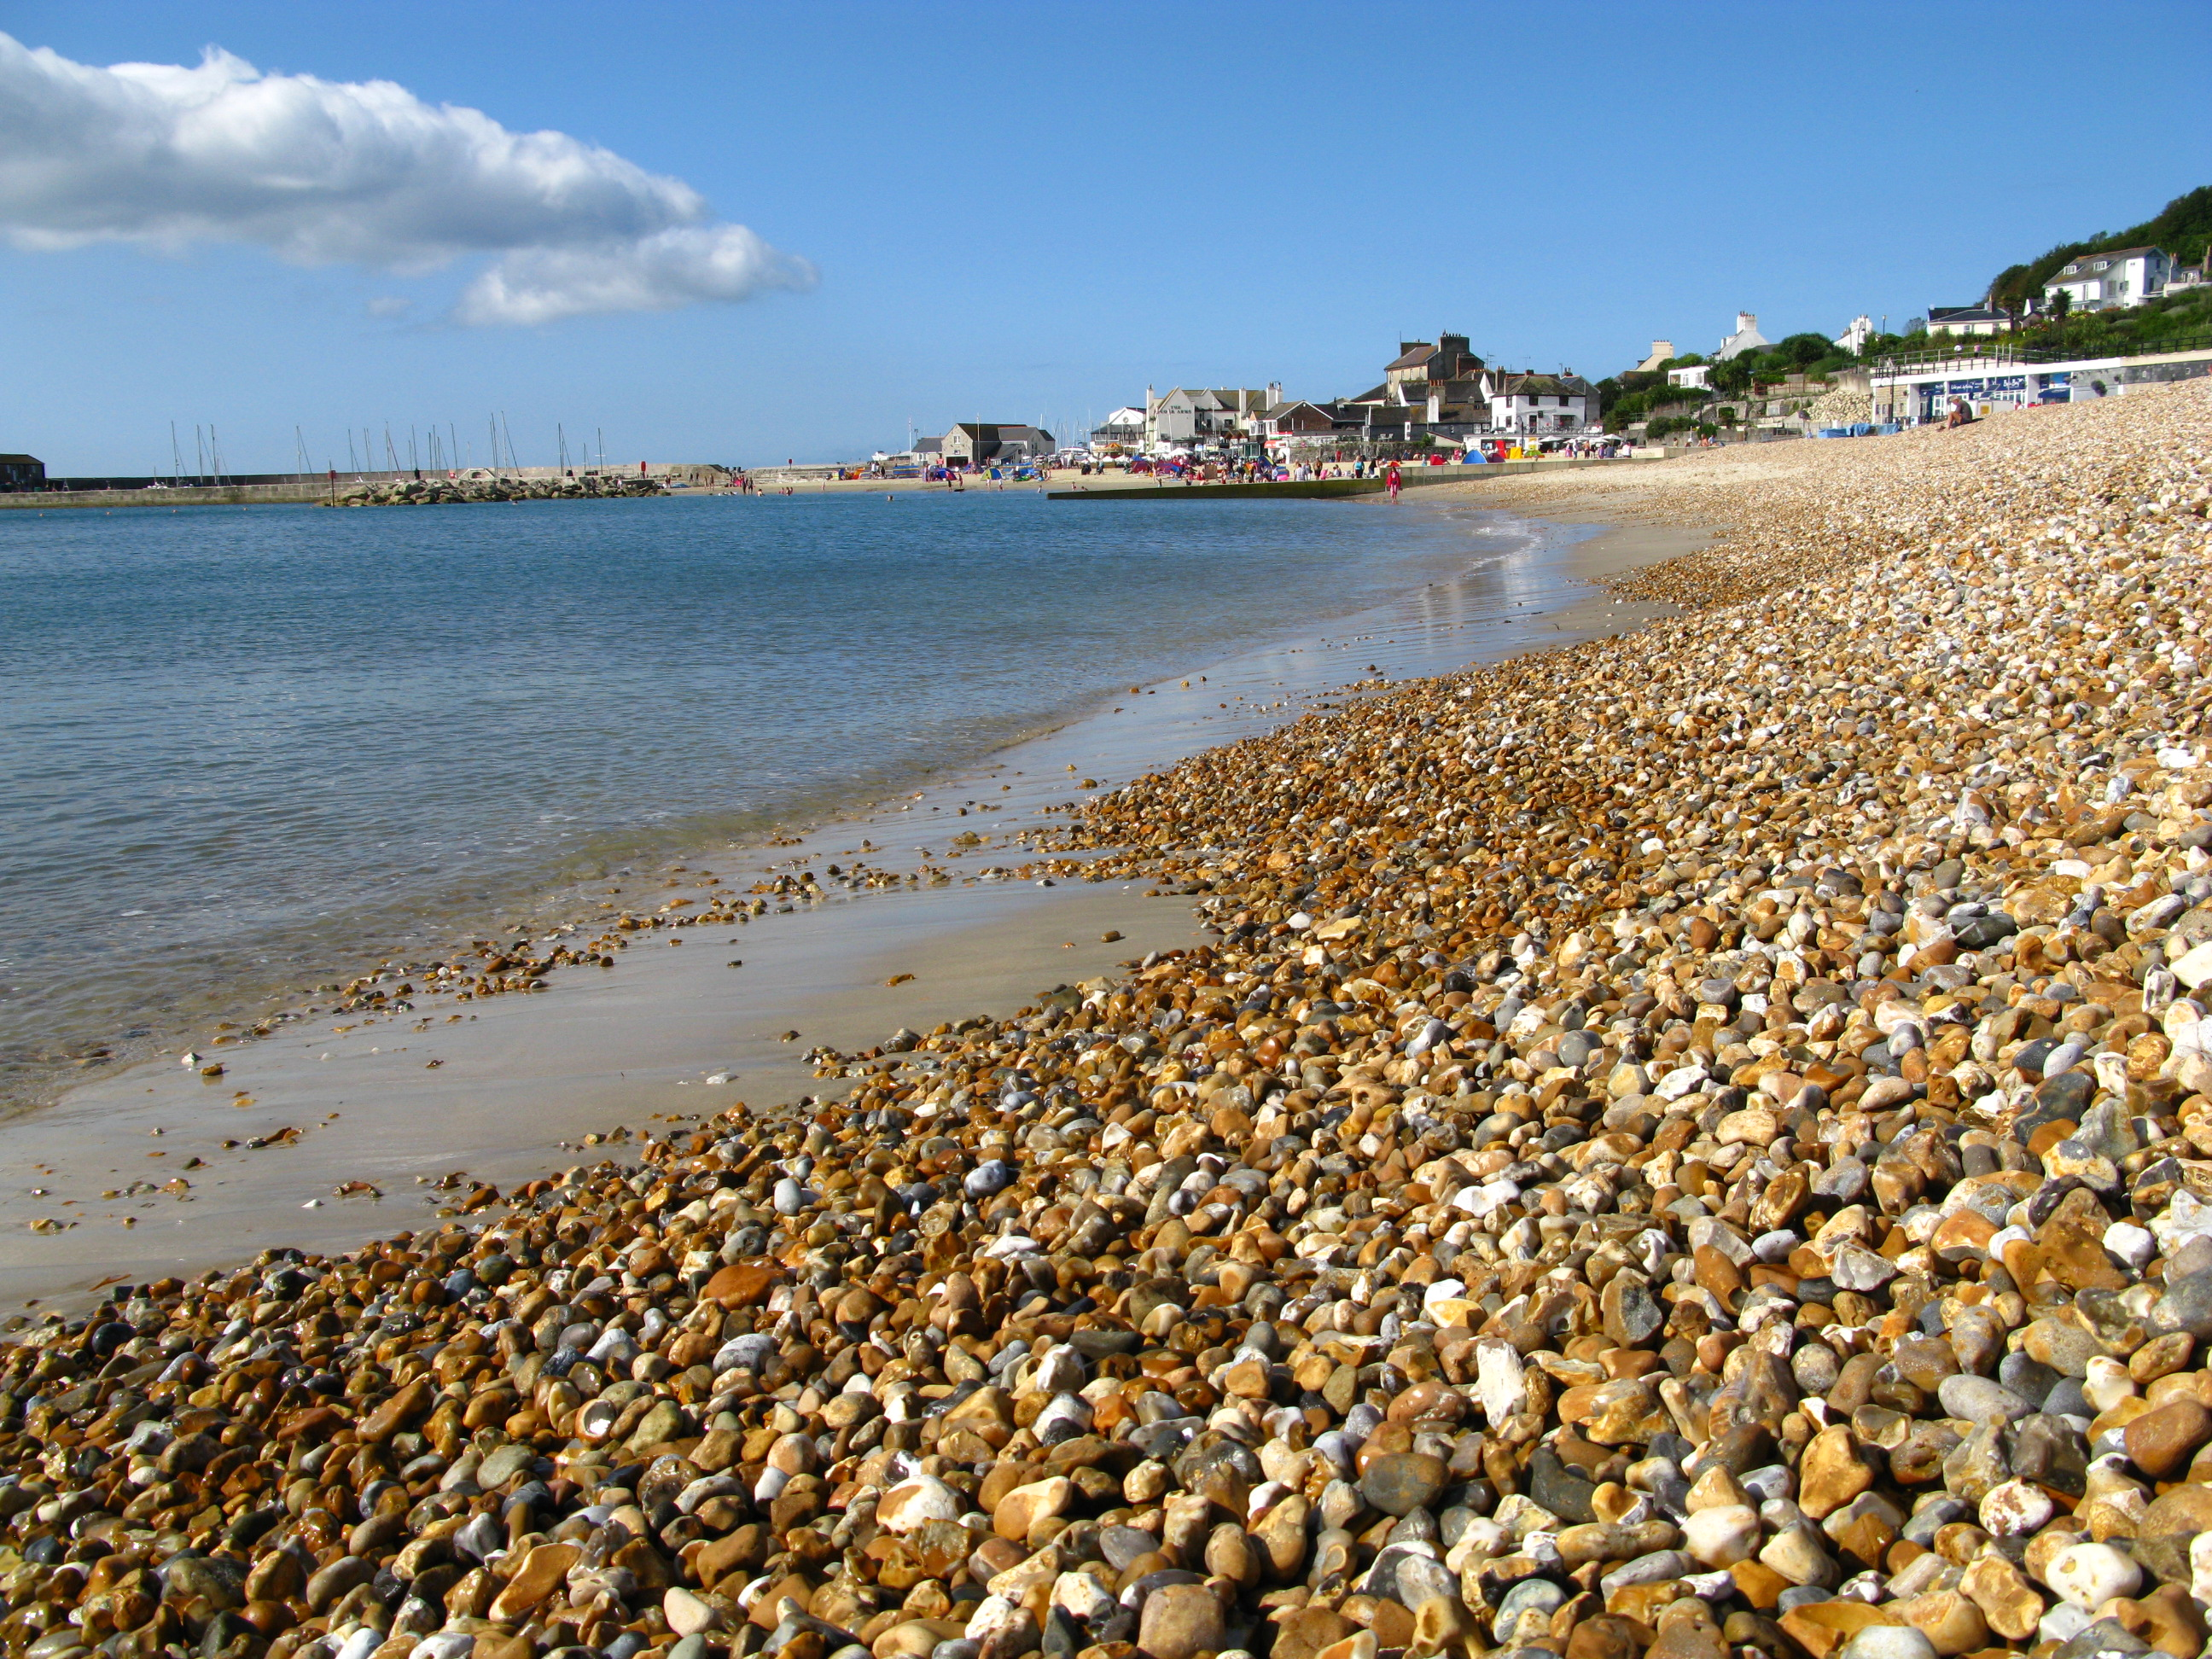 http://upload.wikimedia.org/wikipedia/commons/f/fc/Lyme_Regis_beach_02.JPG